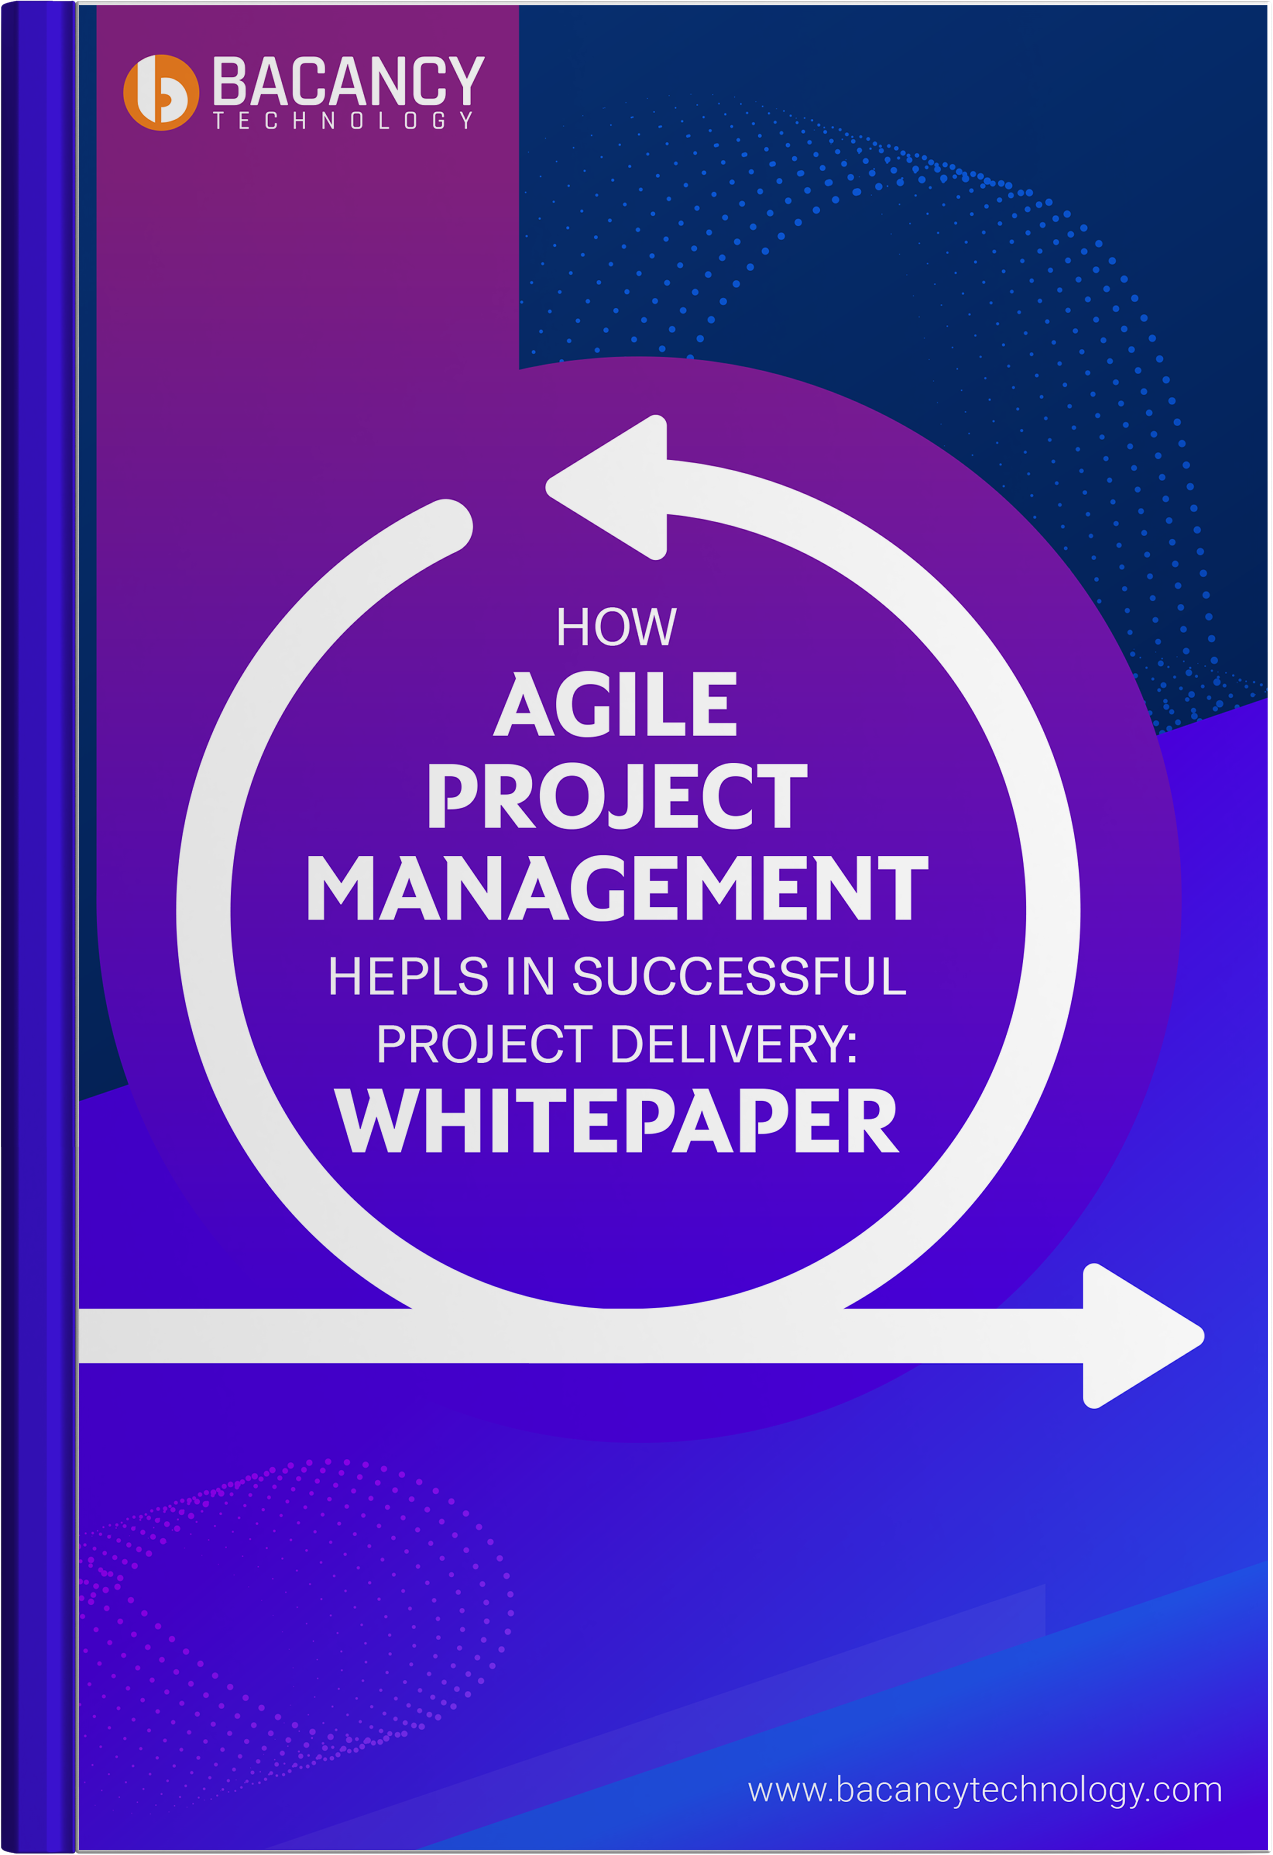 Agile Helps in Successful Project Delivery: Whitepaper